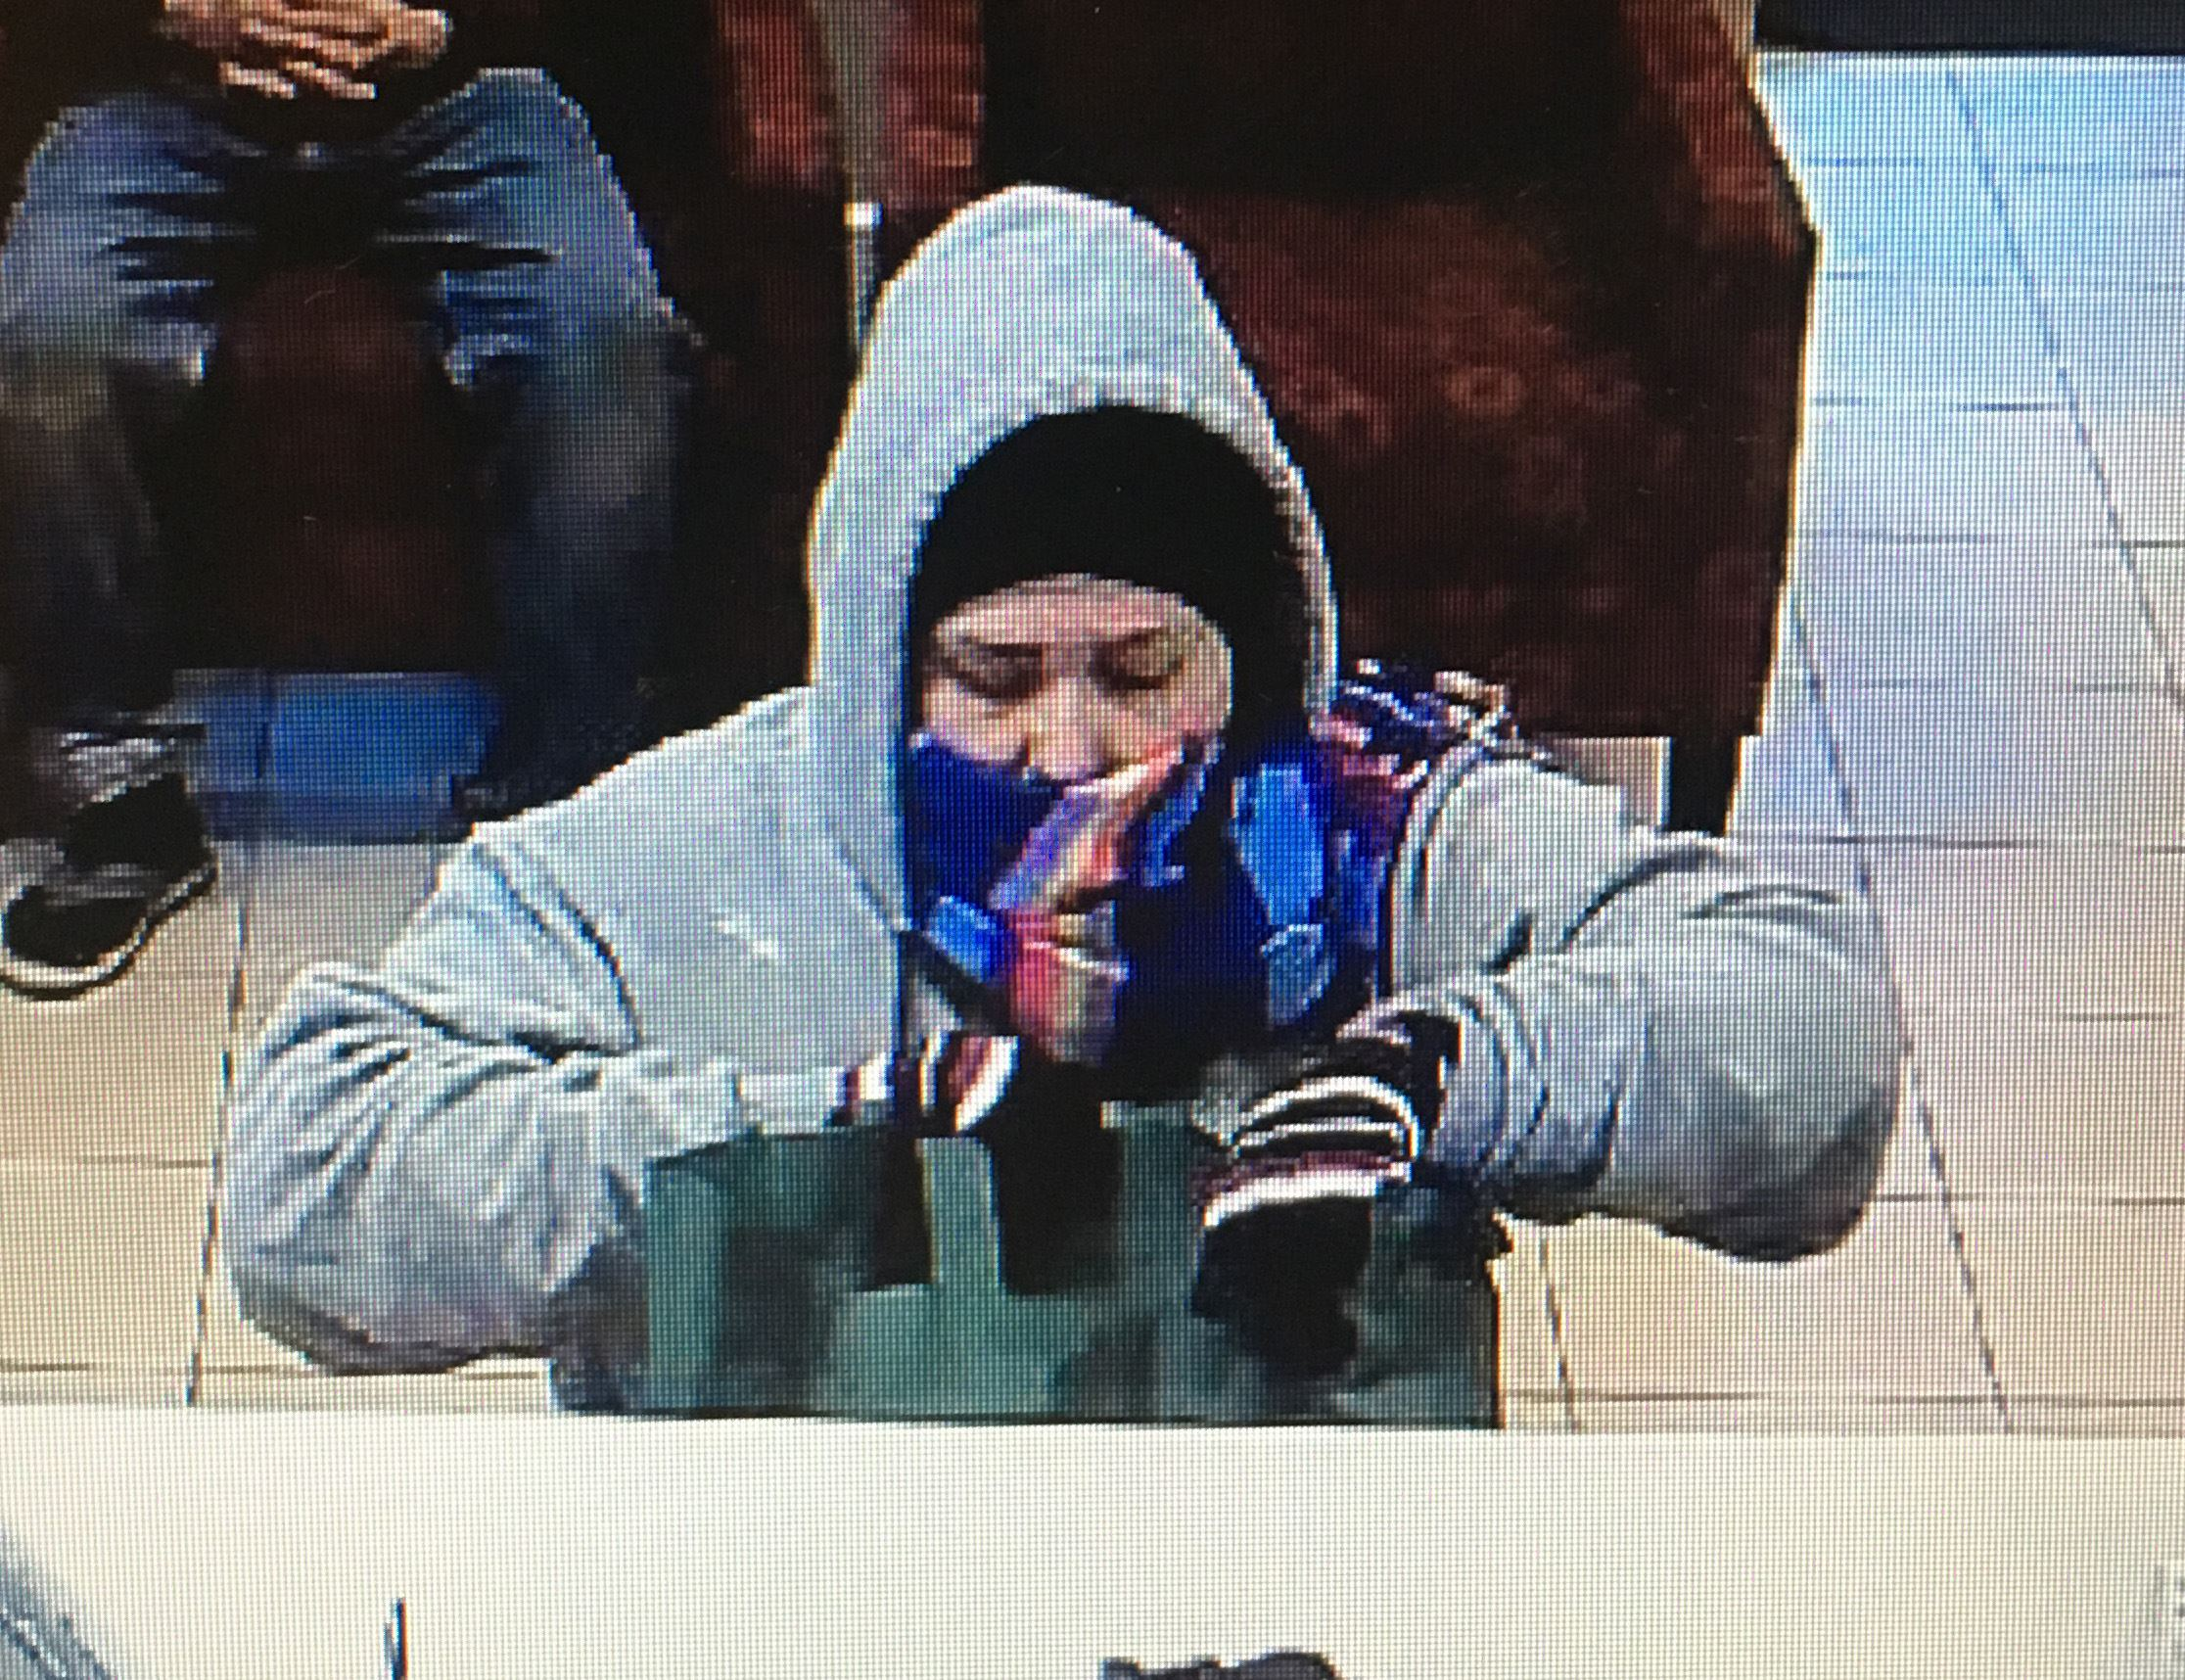 Suspect in 1-5-19 Wells Fargo Robbery Photo 1